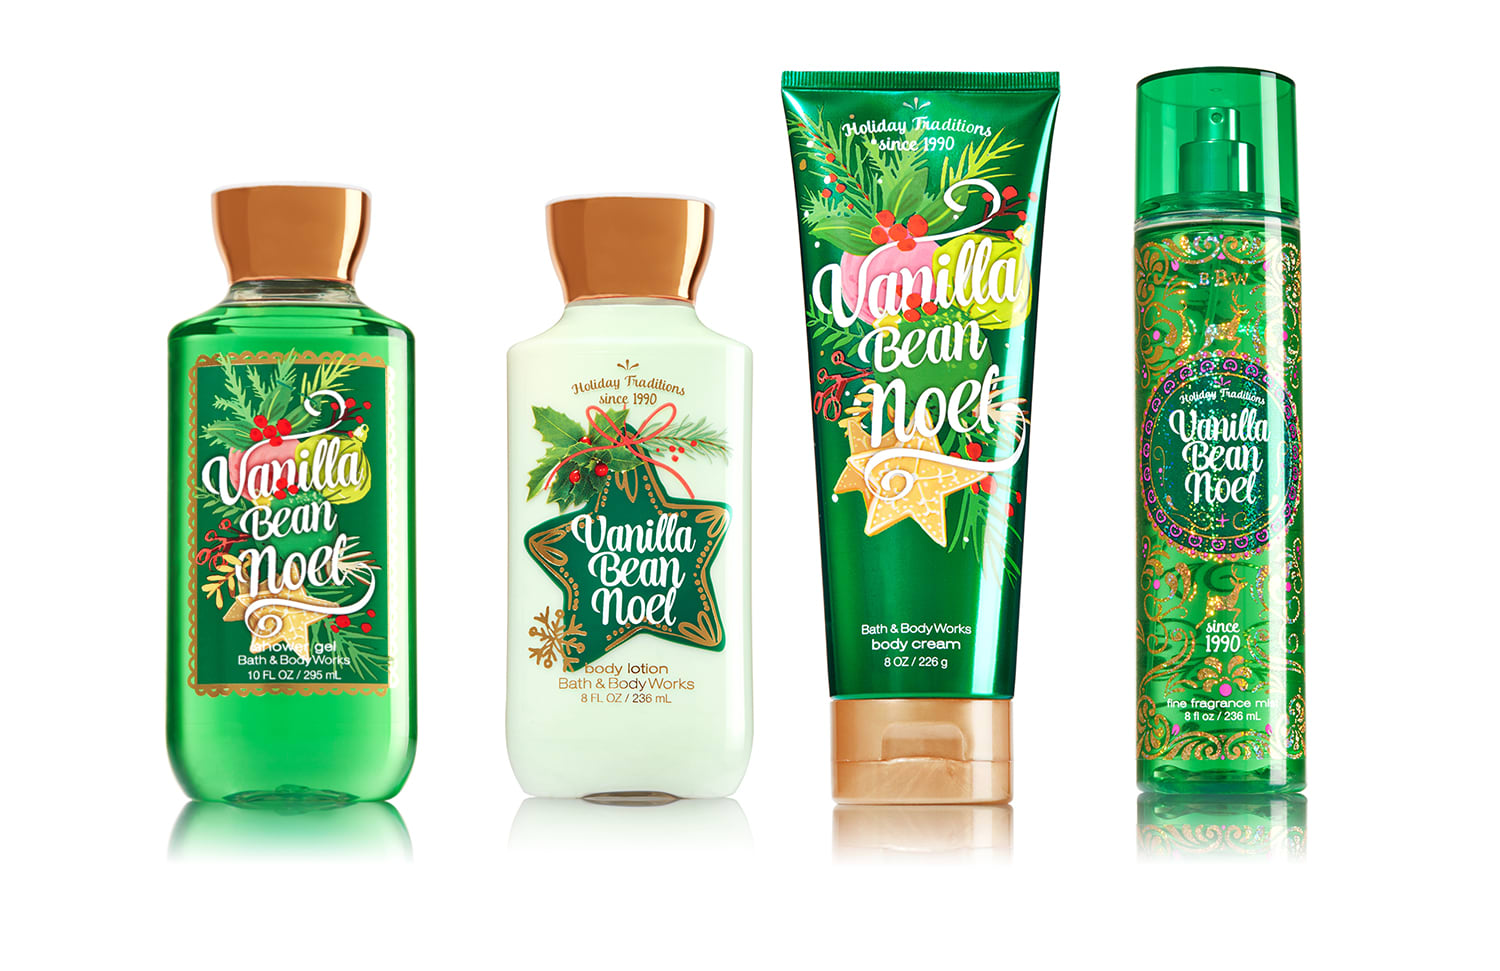 Bath & Body Works - Holiday Traditions